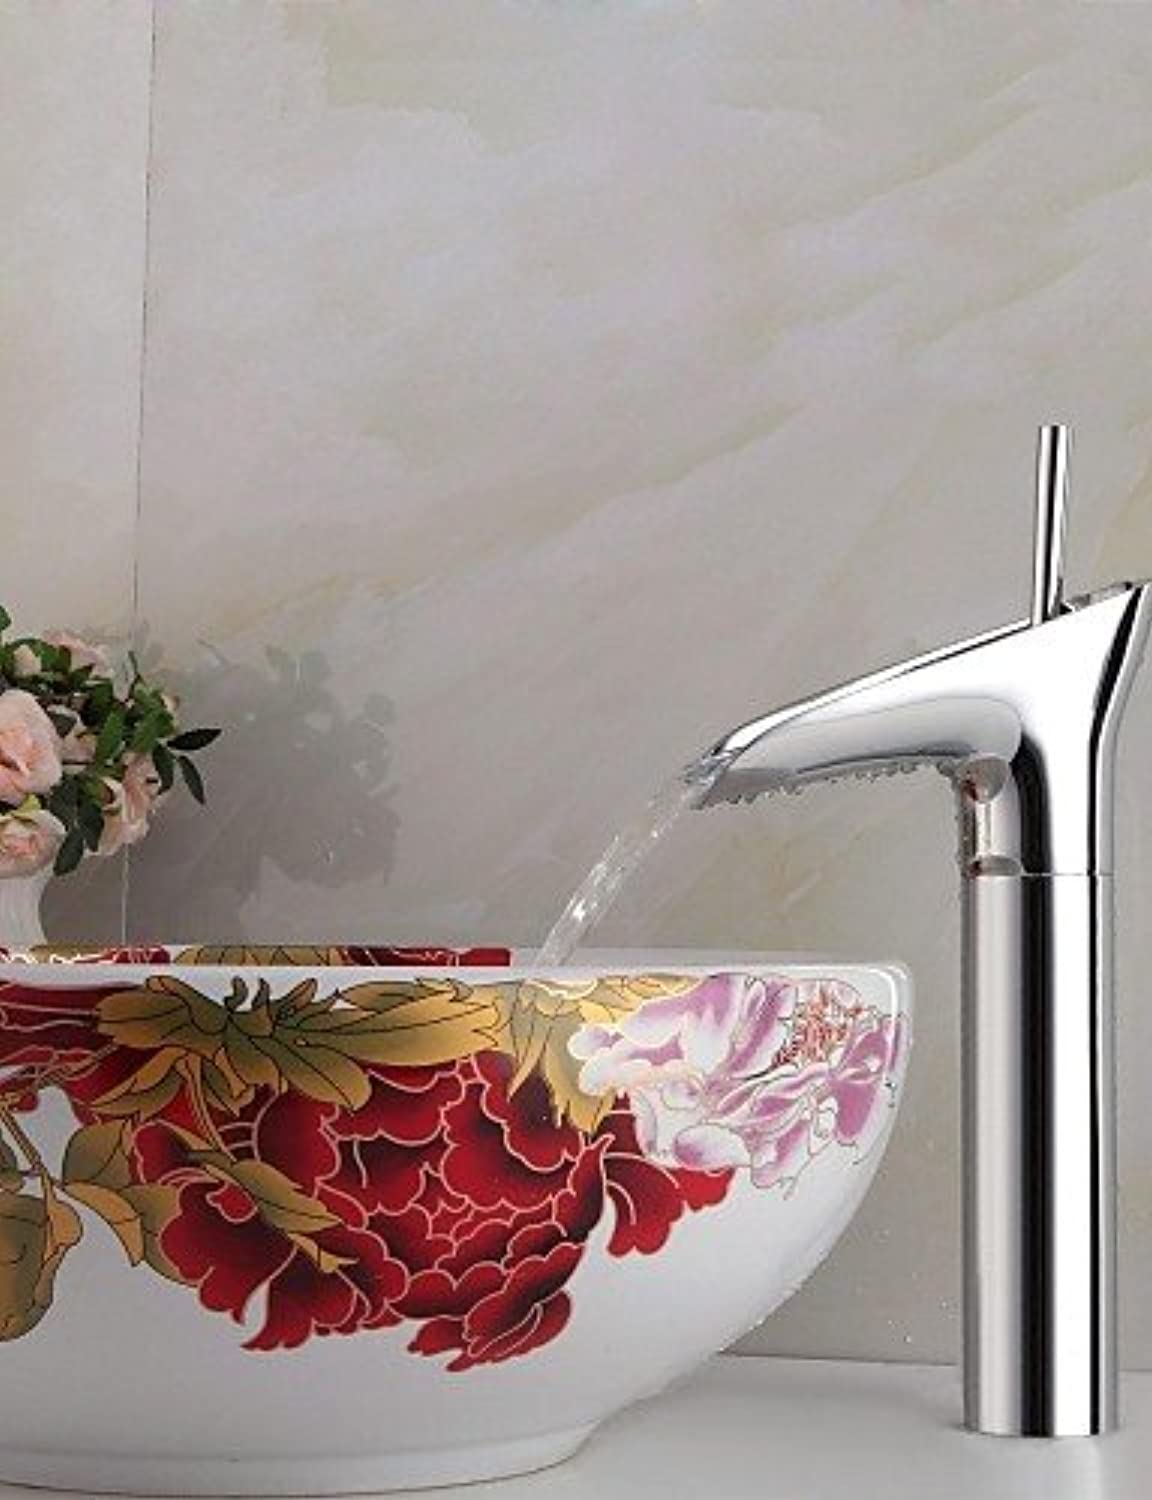 KHSKX Contemporary Winebowl Style Chrome-plated Brass Cold   Hot Water Faucet - Silver